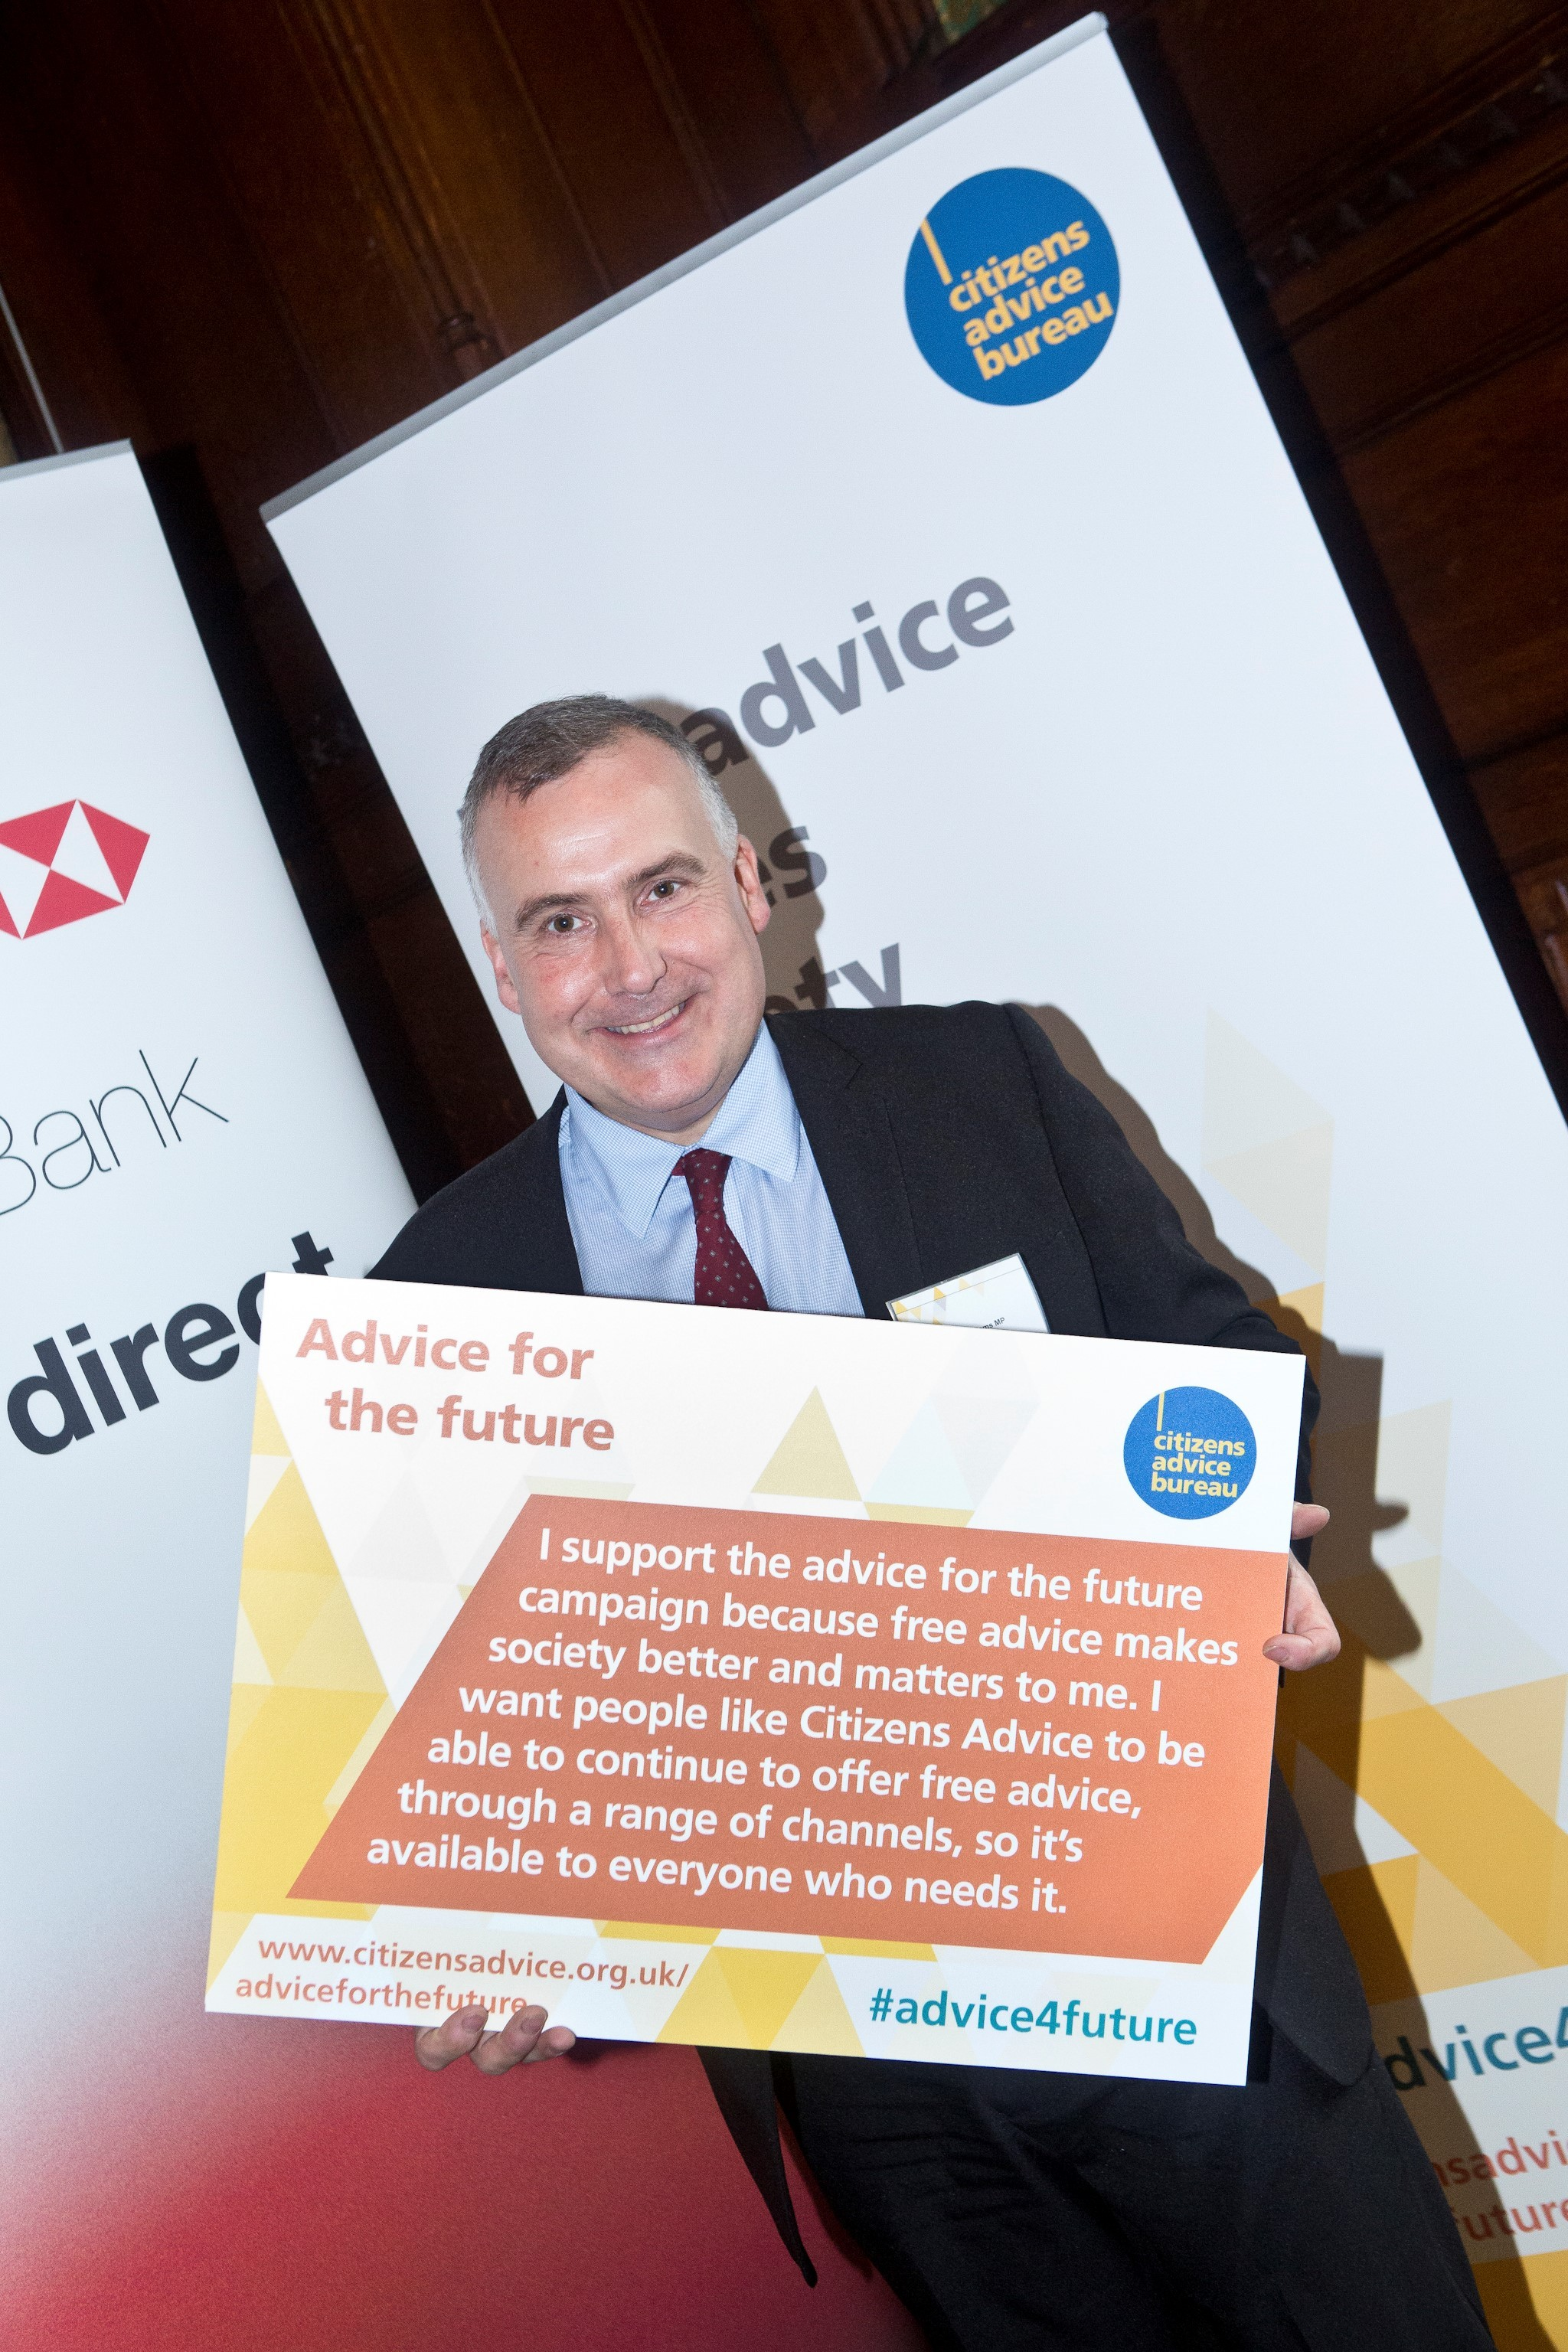 MP pledges support for Citizens Advice